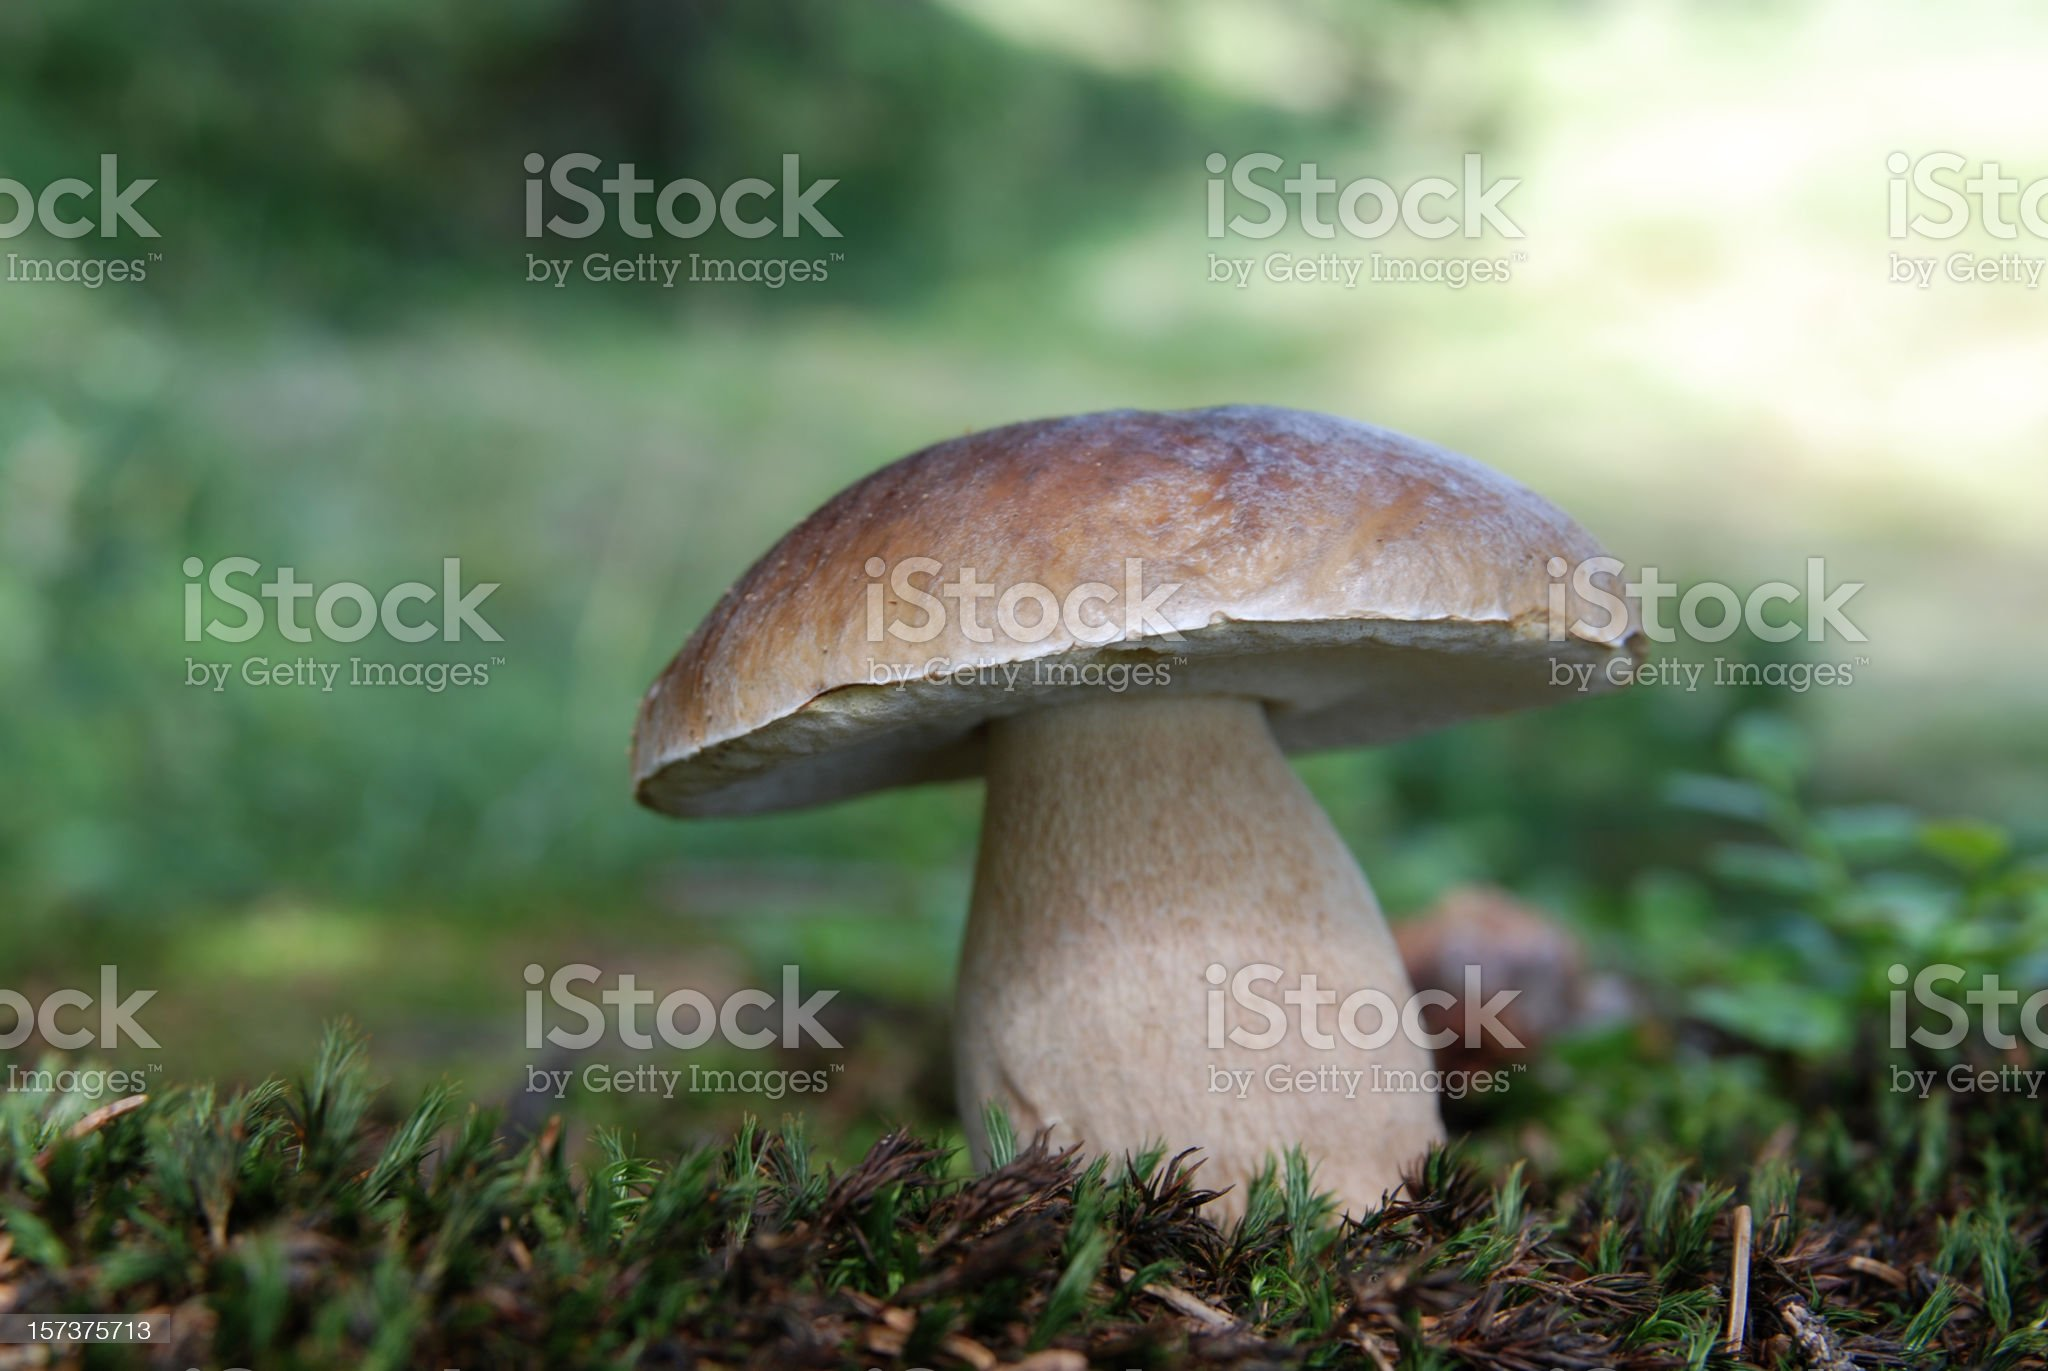 beautiful cep mushroom in the forest on moss royalty-free stock photo